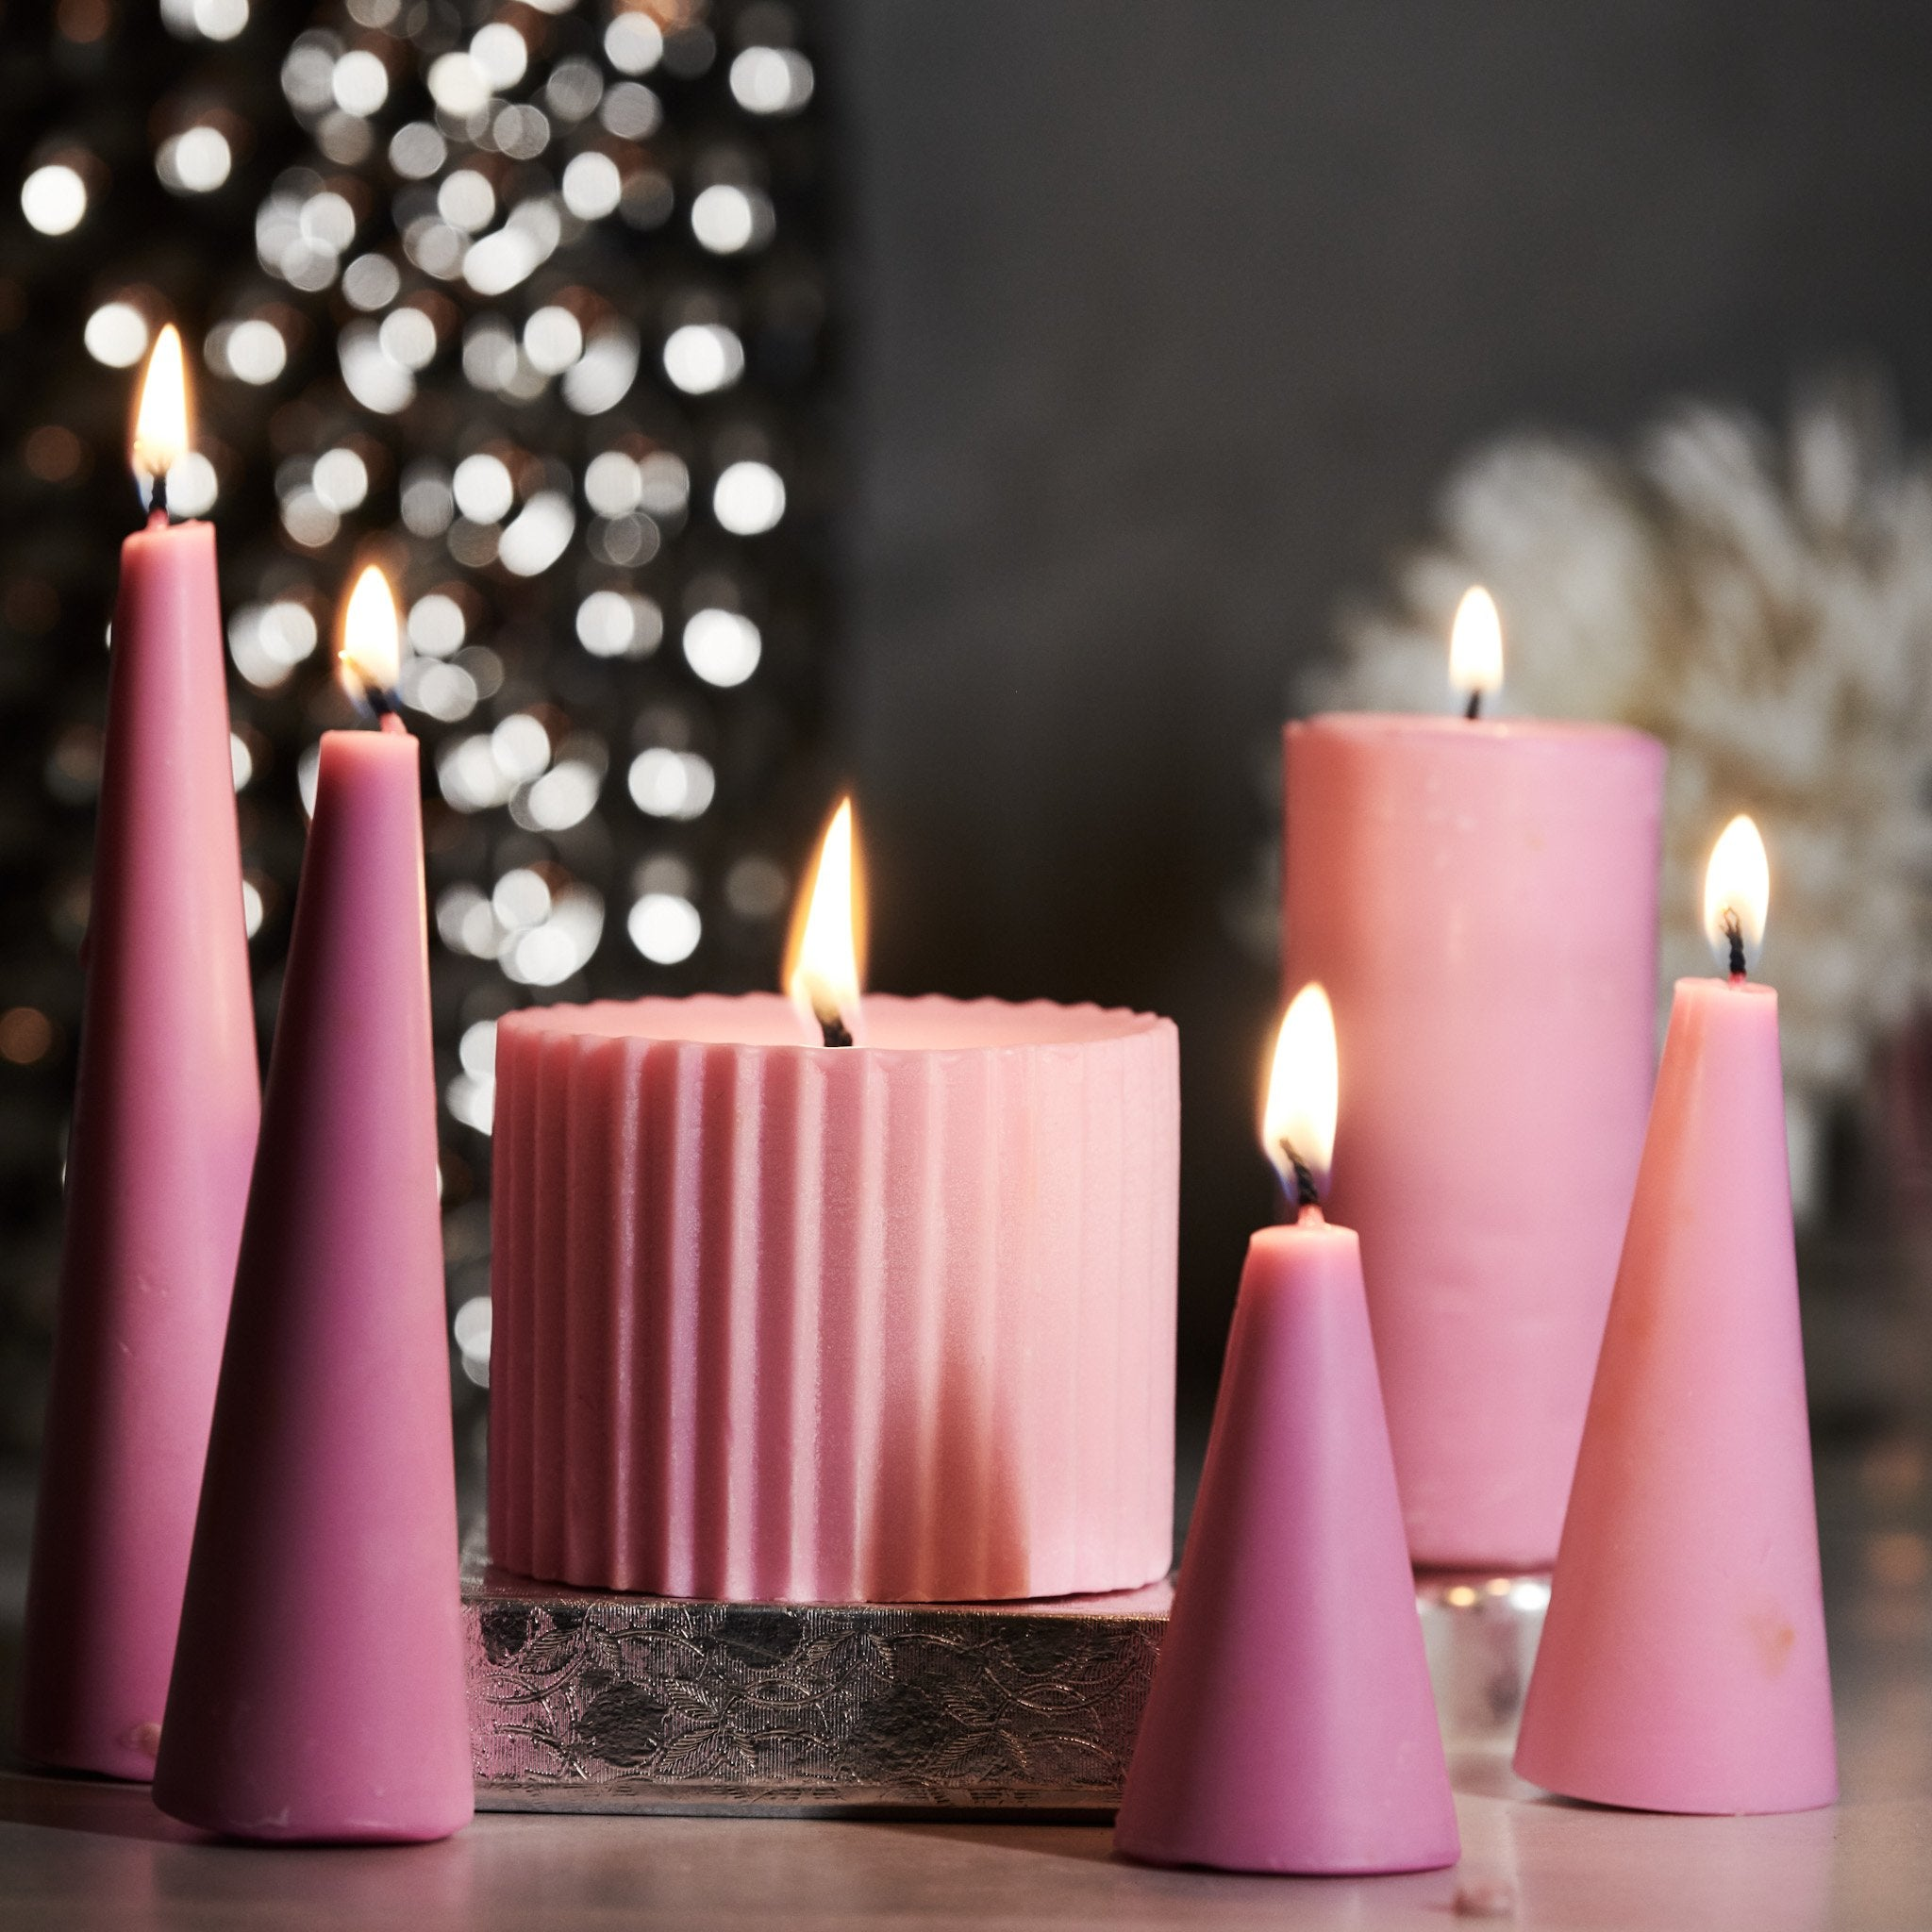 Candles for Diwali Decorations Online.